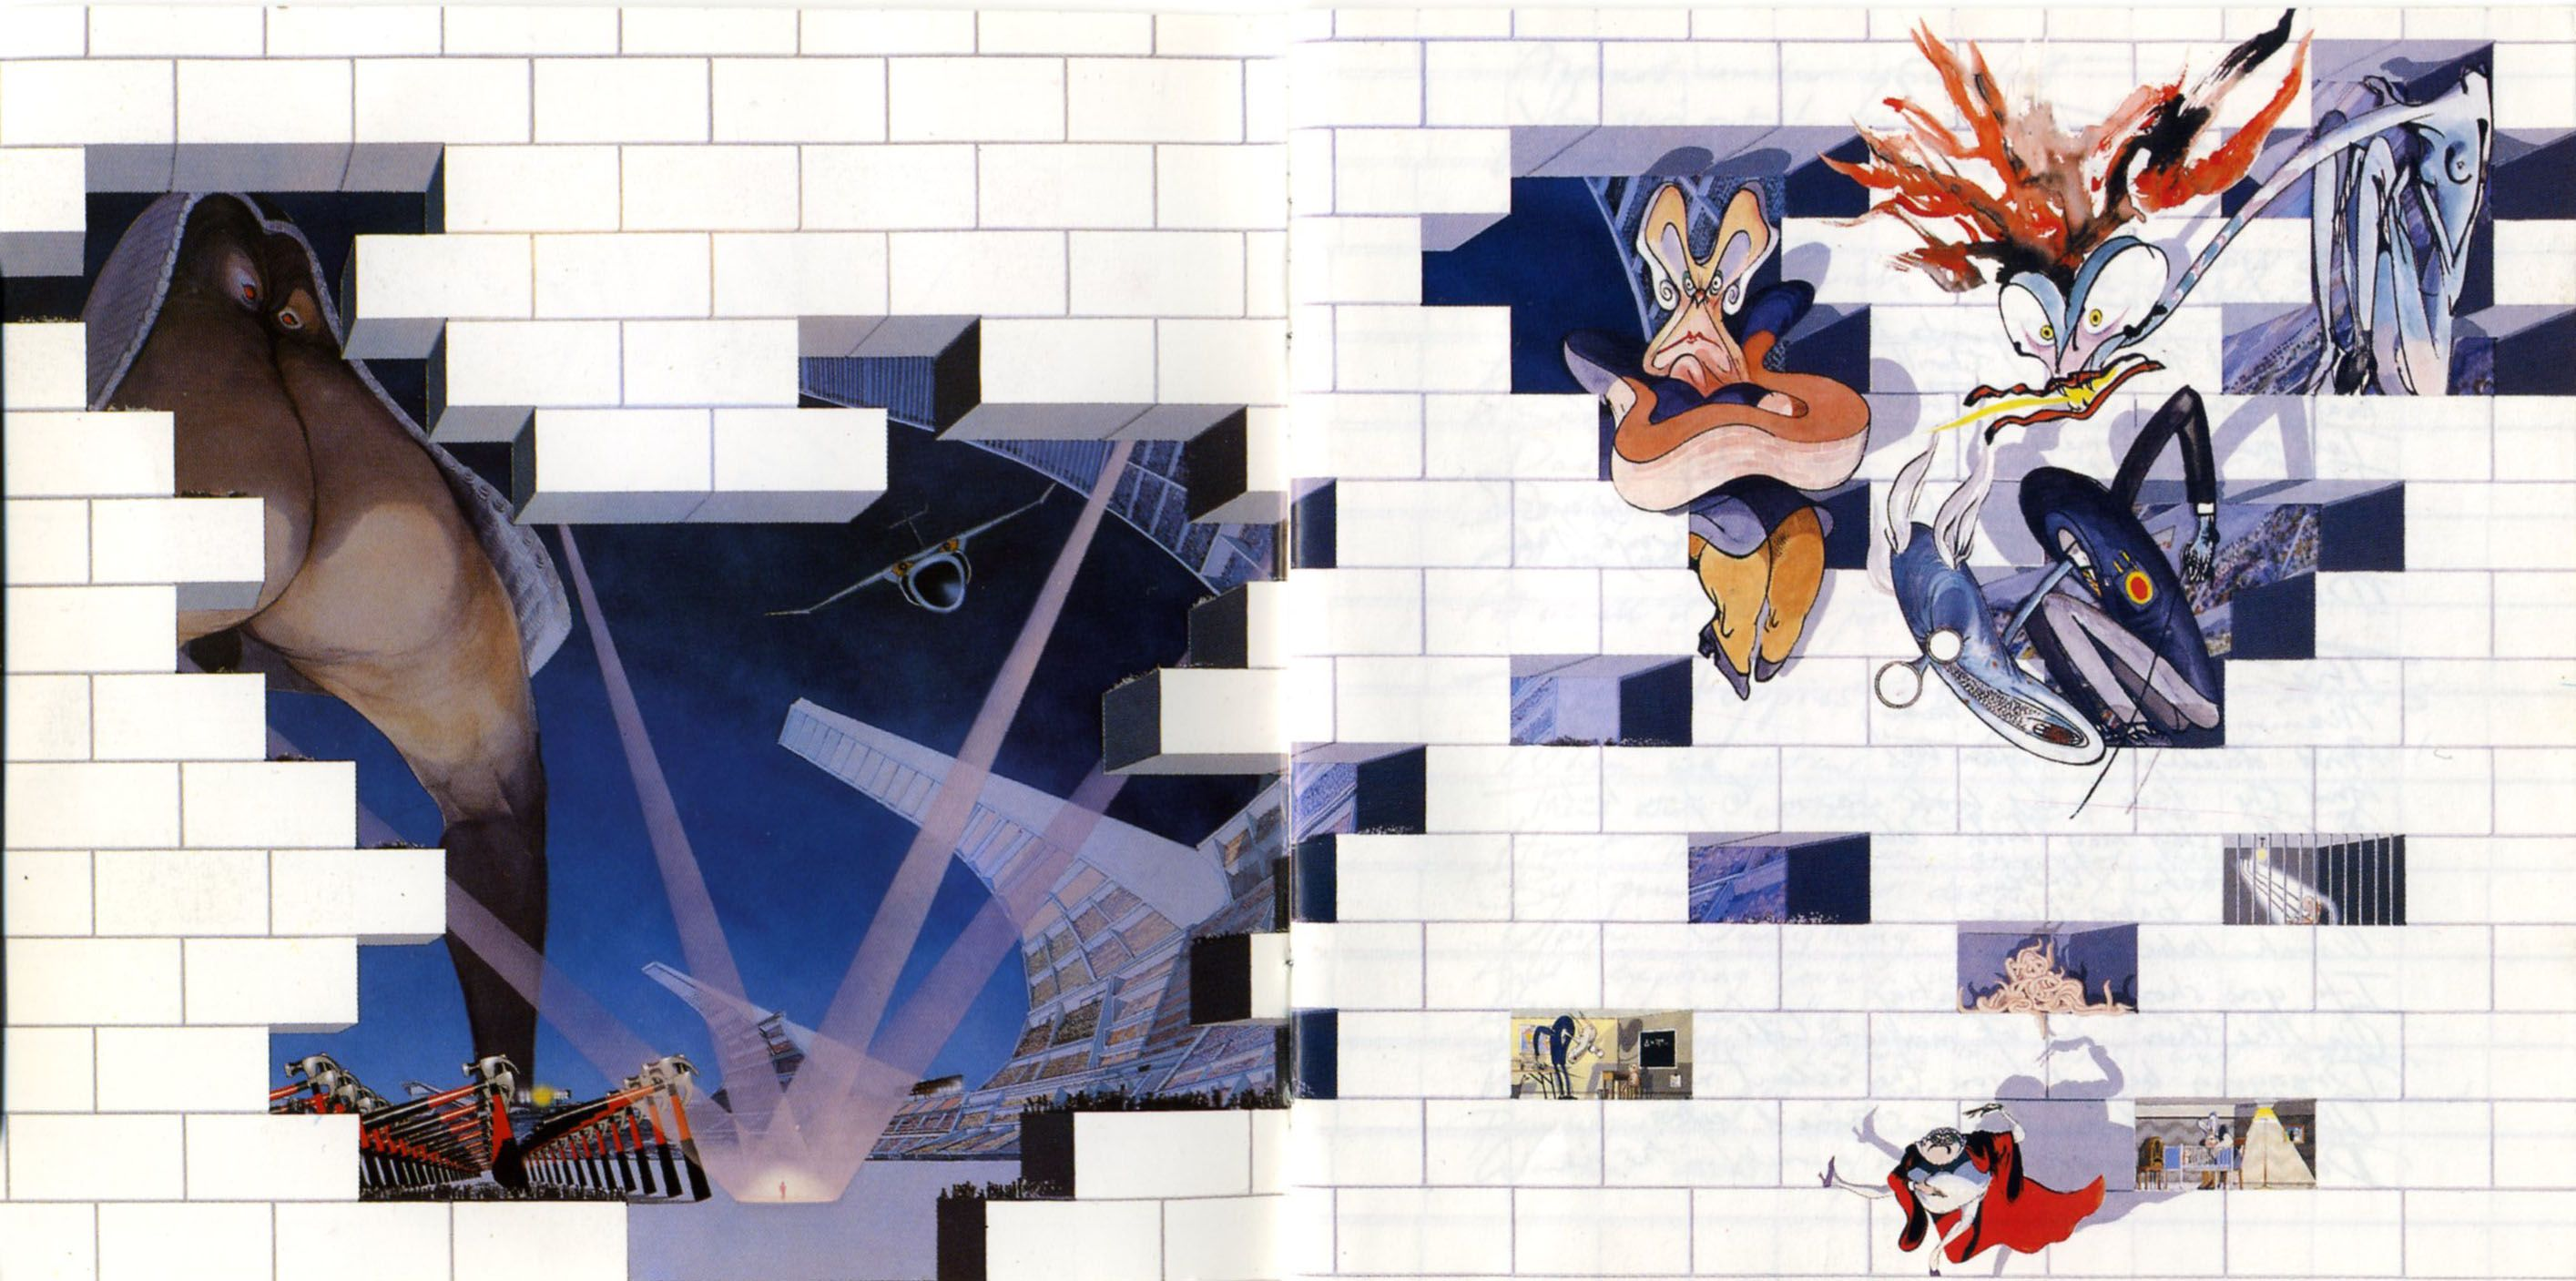 The Wall | Pink floyd artwork, Pink floyd art, Pink floyd